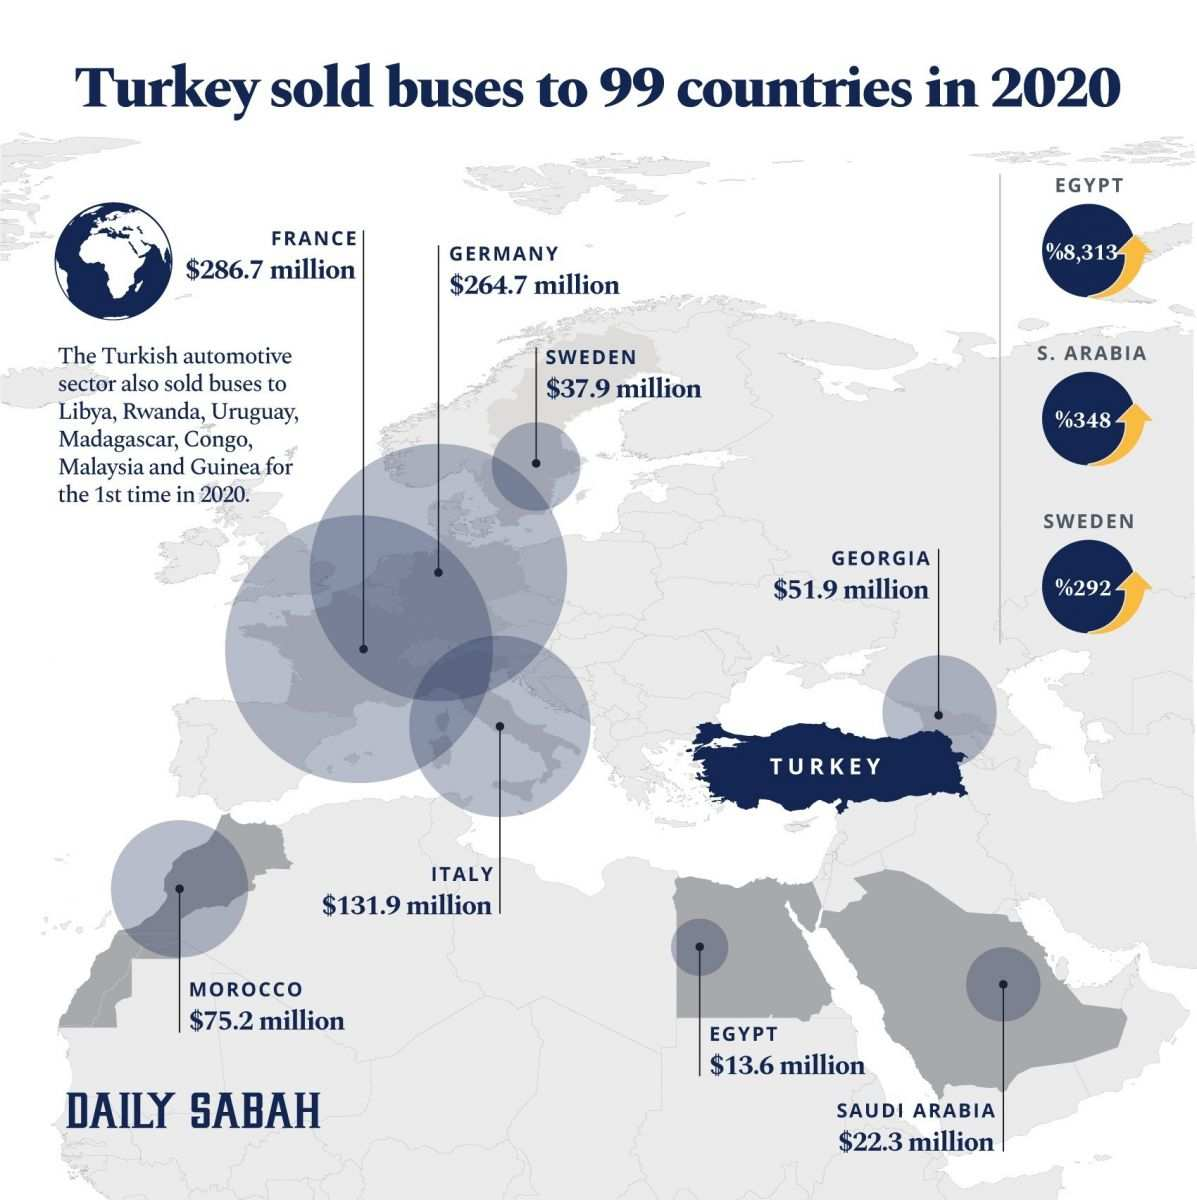 Turkey Sold Buses to 99 Countries in 2020